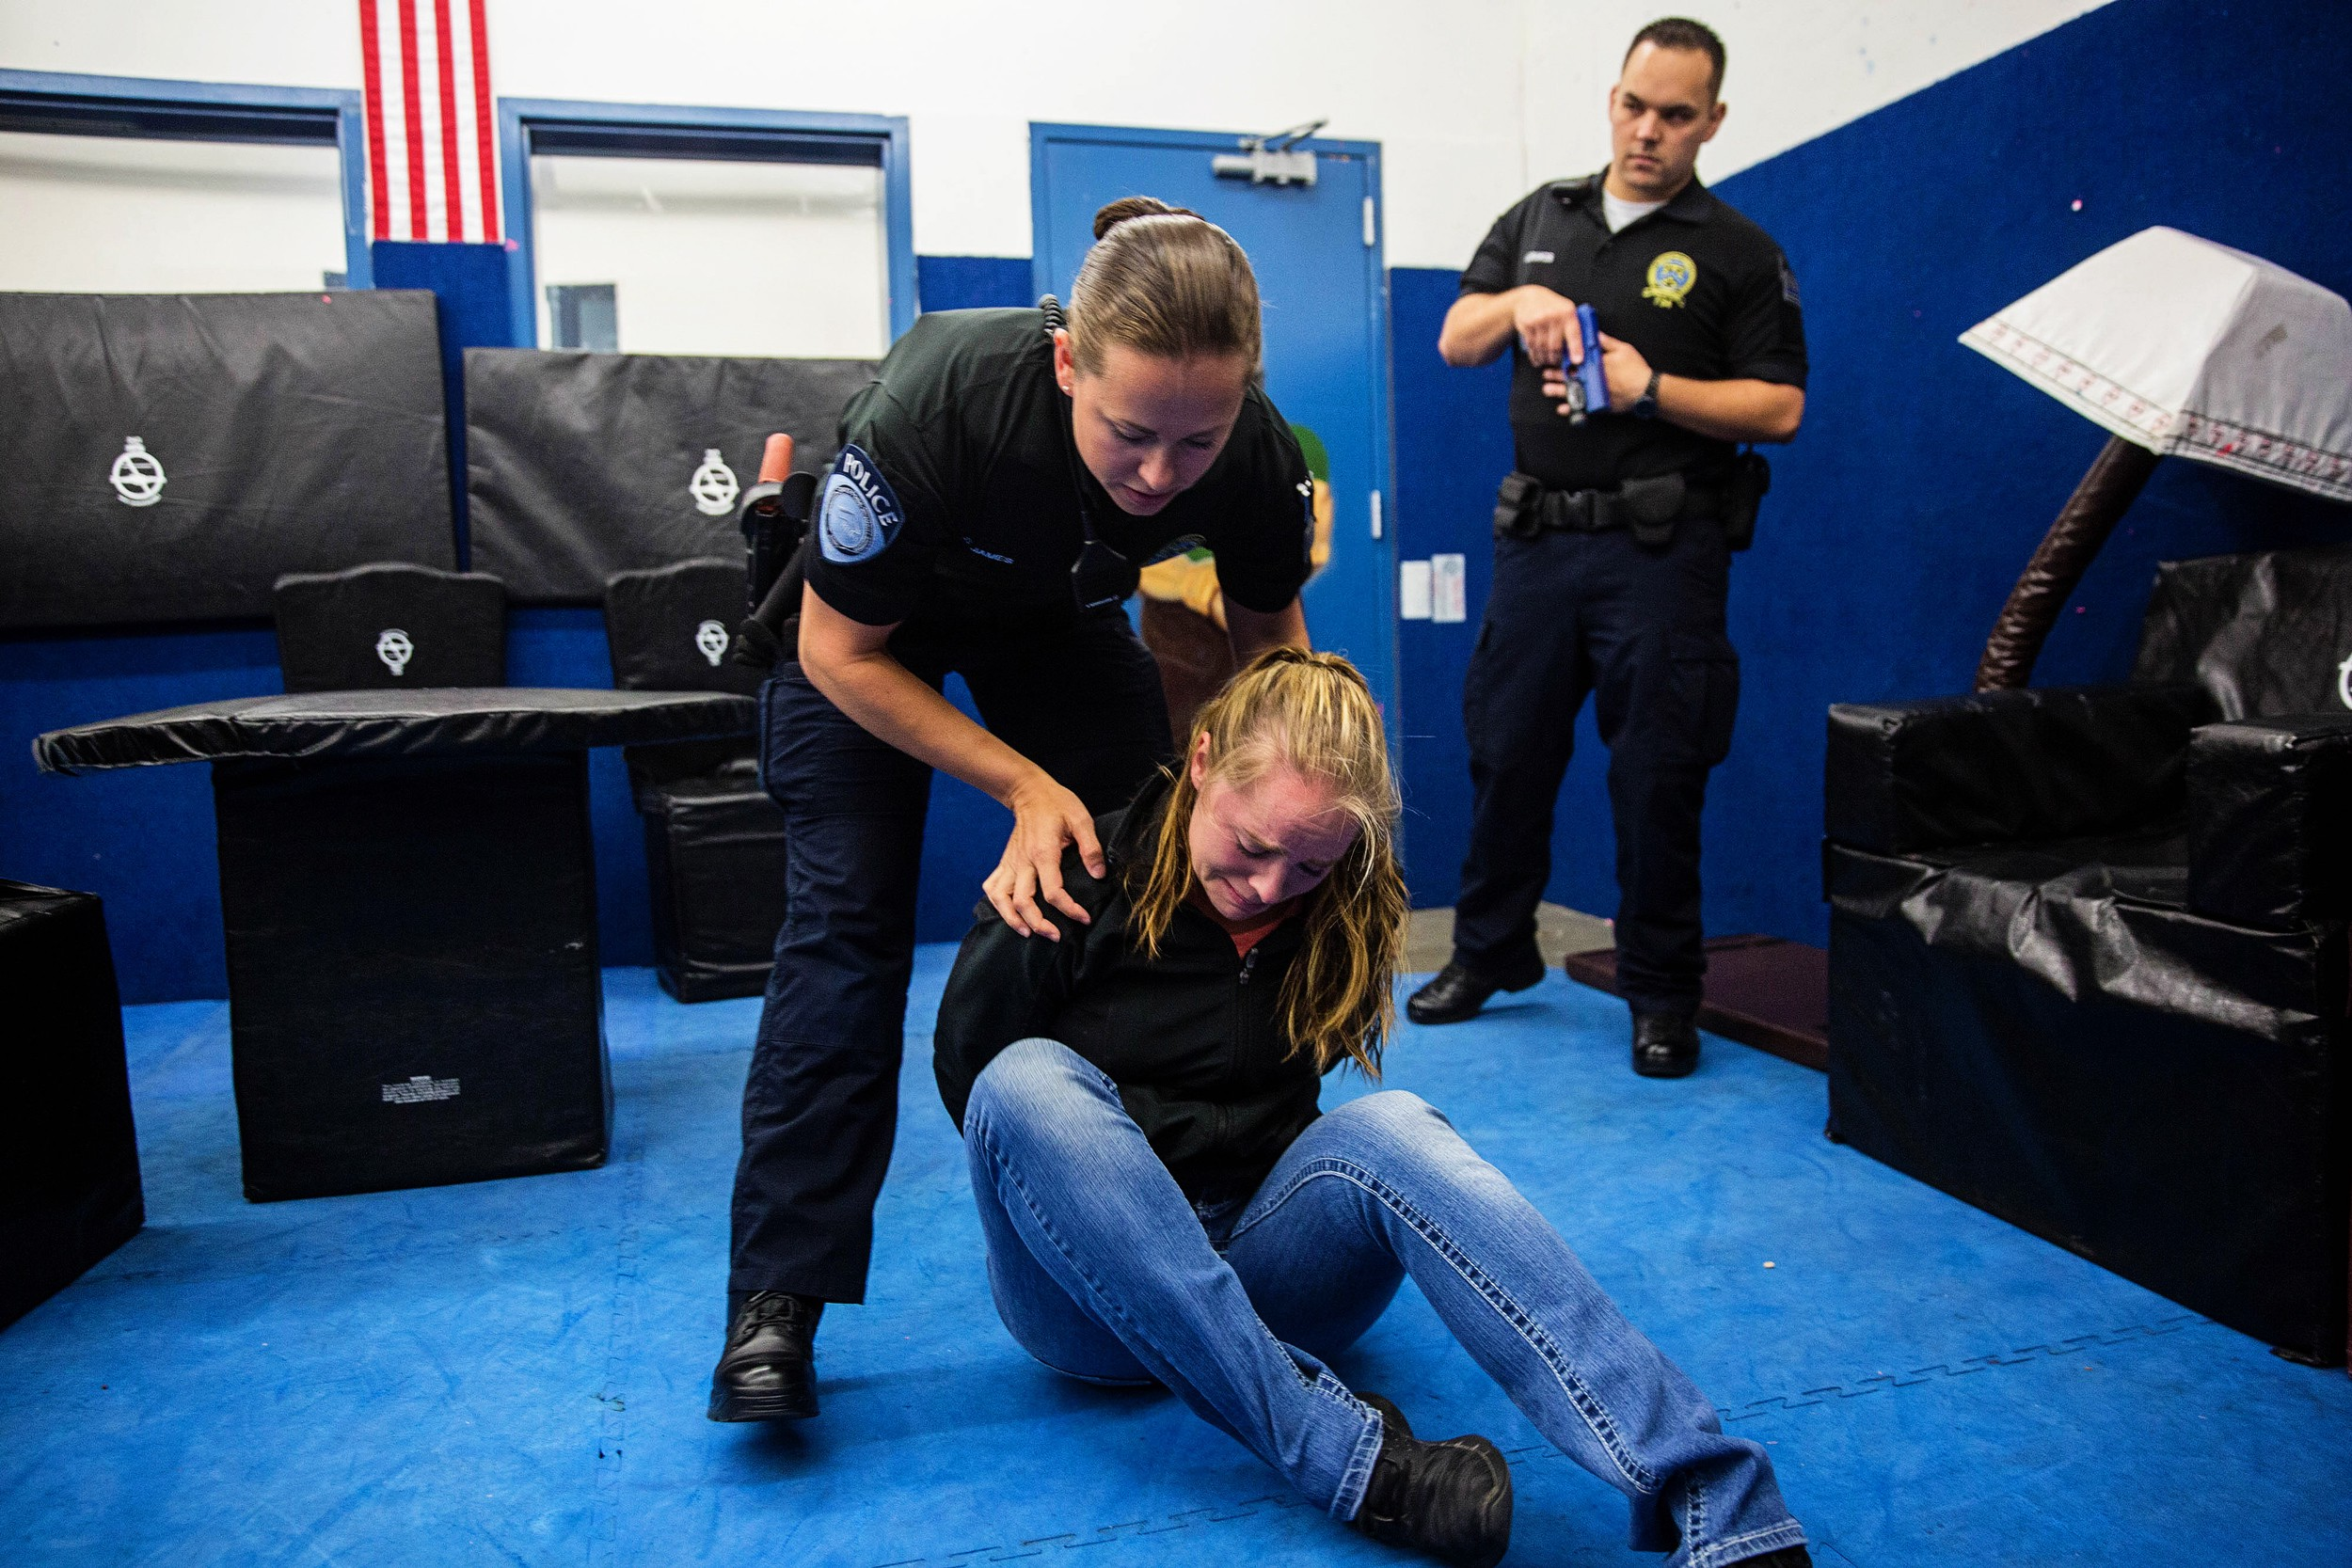 Empathy Lessons Training Police To >> The Empathetic Police Academy Upstanders Medium